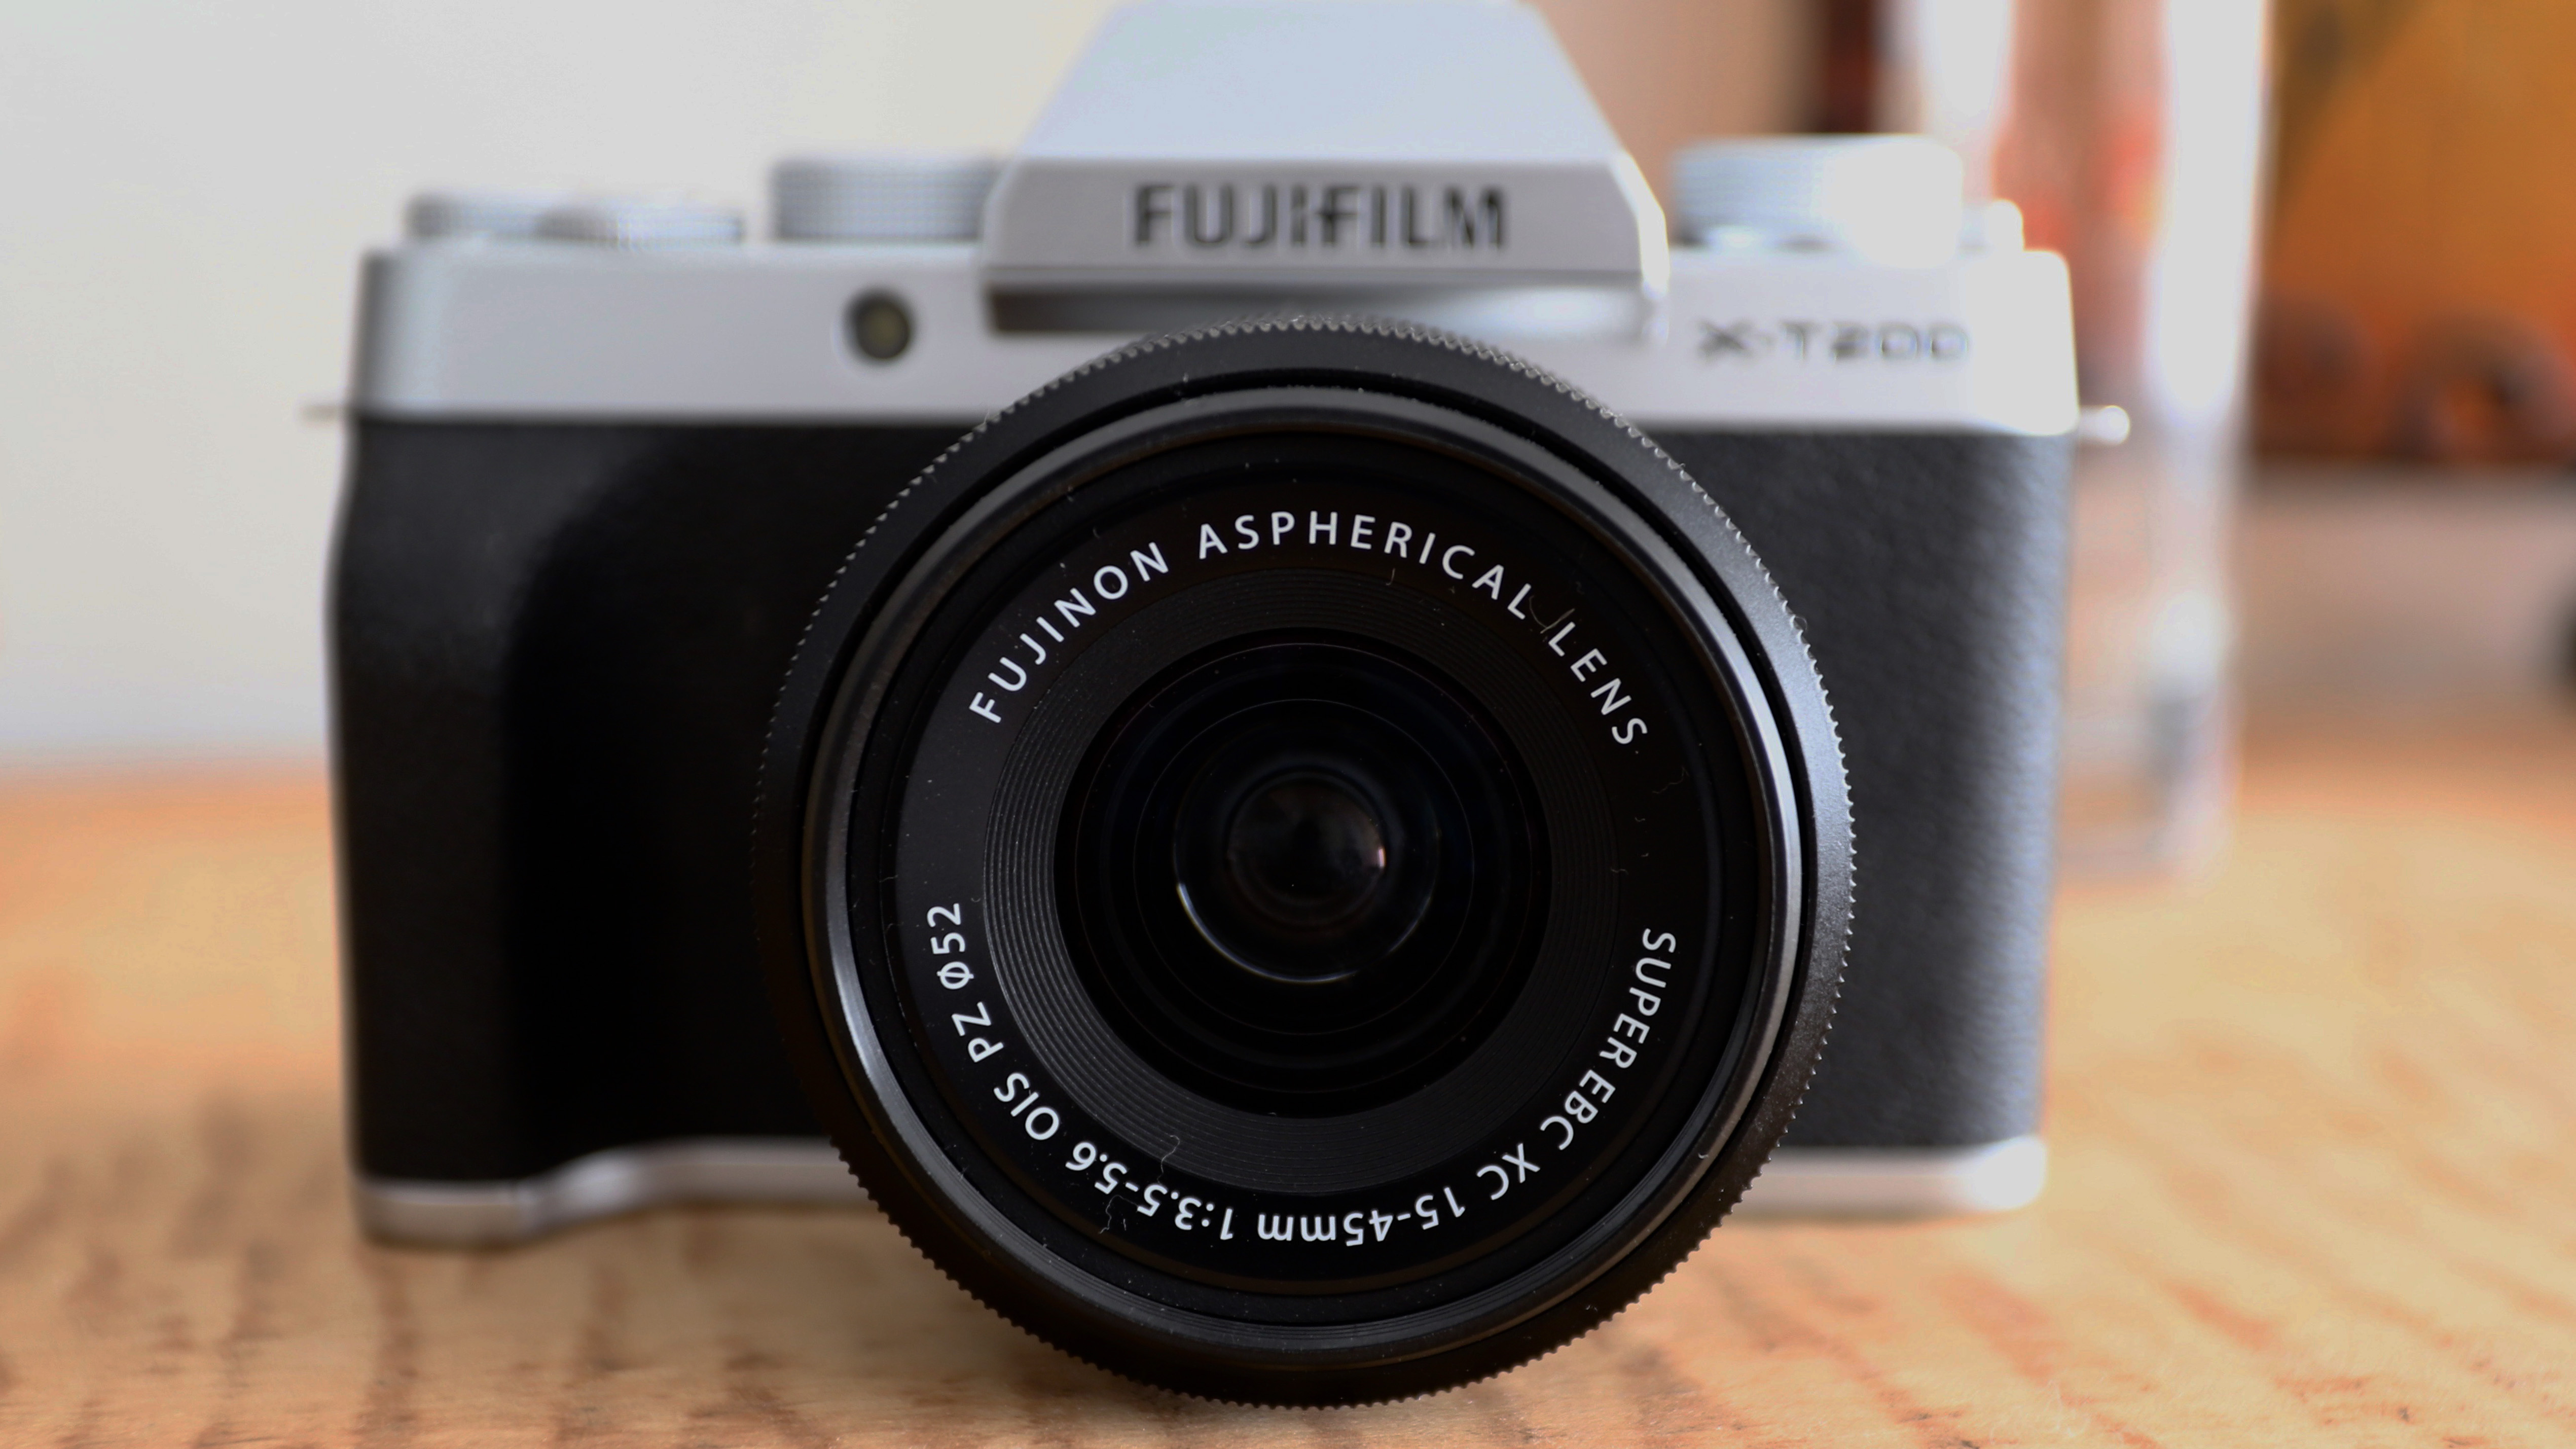 The Fujifilm X-T200 sat on a wooden table with its 15-45mm kit lens